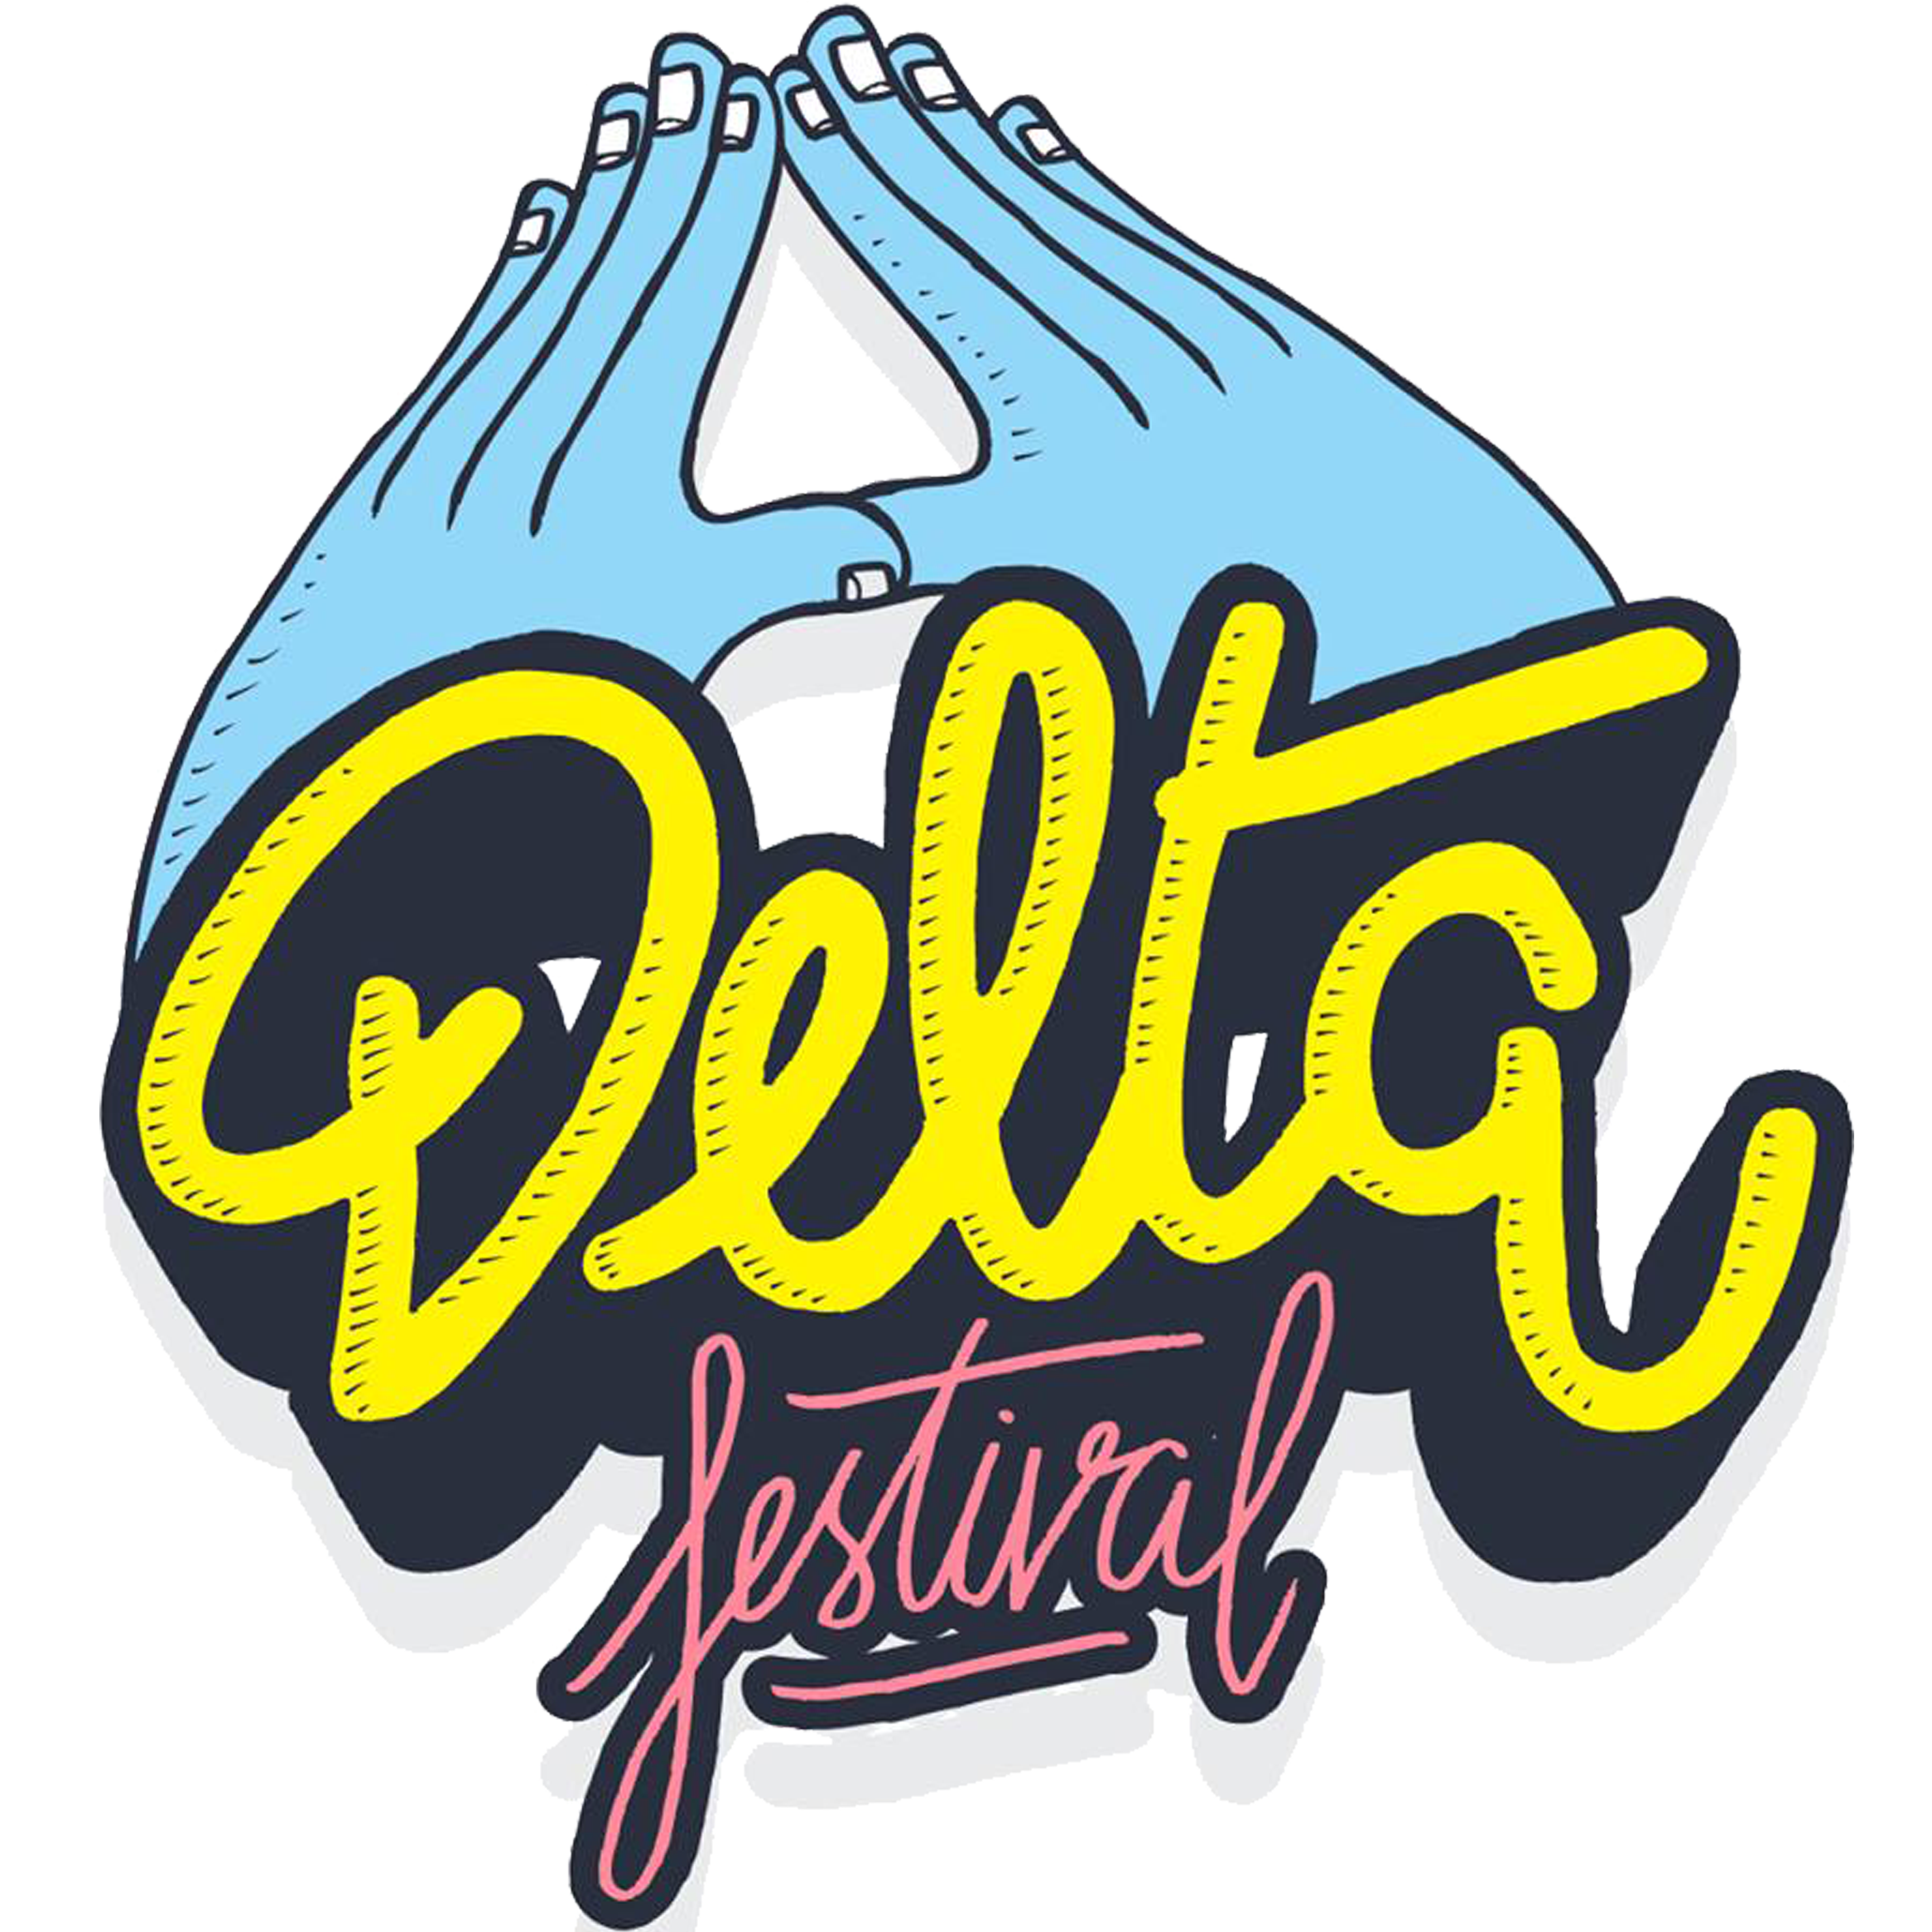 Delta Festival announced new artists for its 6th edition